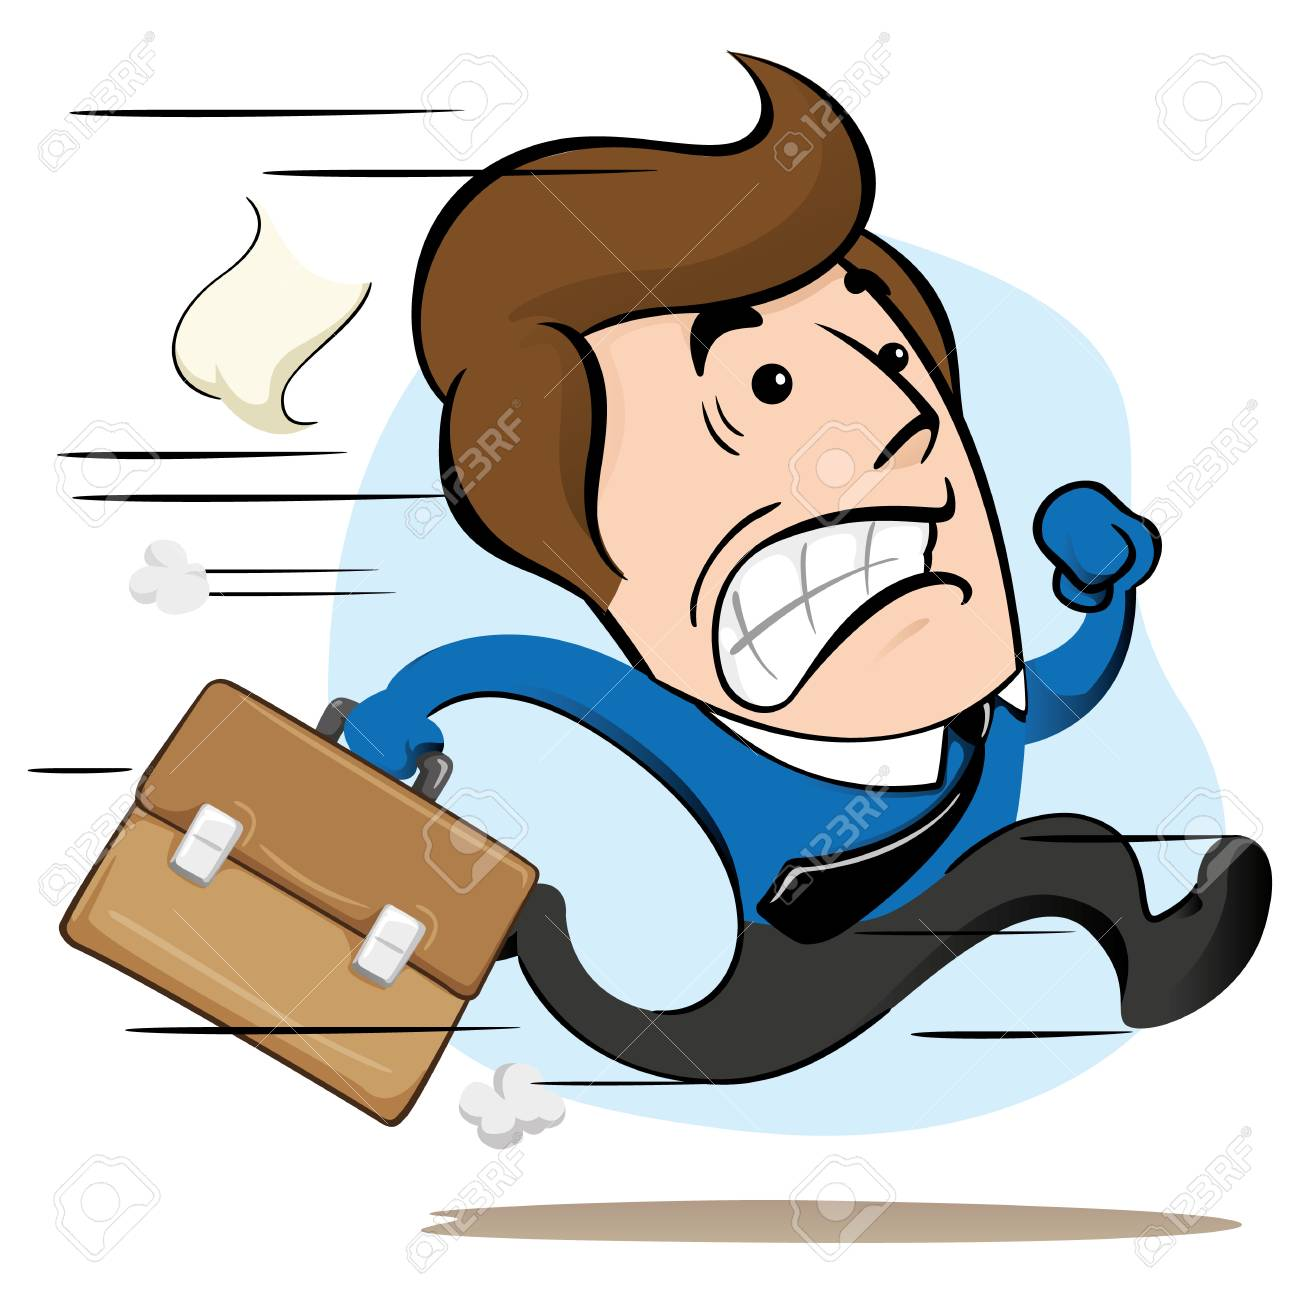 Illustration of a mascot manager, executive, running with a briefcase in hand fleeing or delaying. Ideal for training, internal and institutional matters. - 89821341